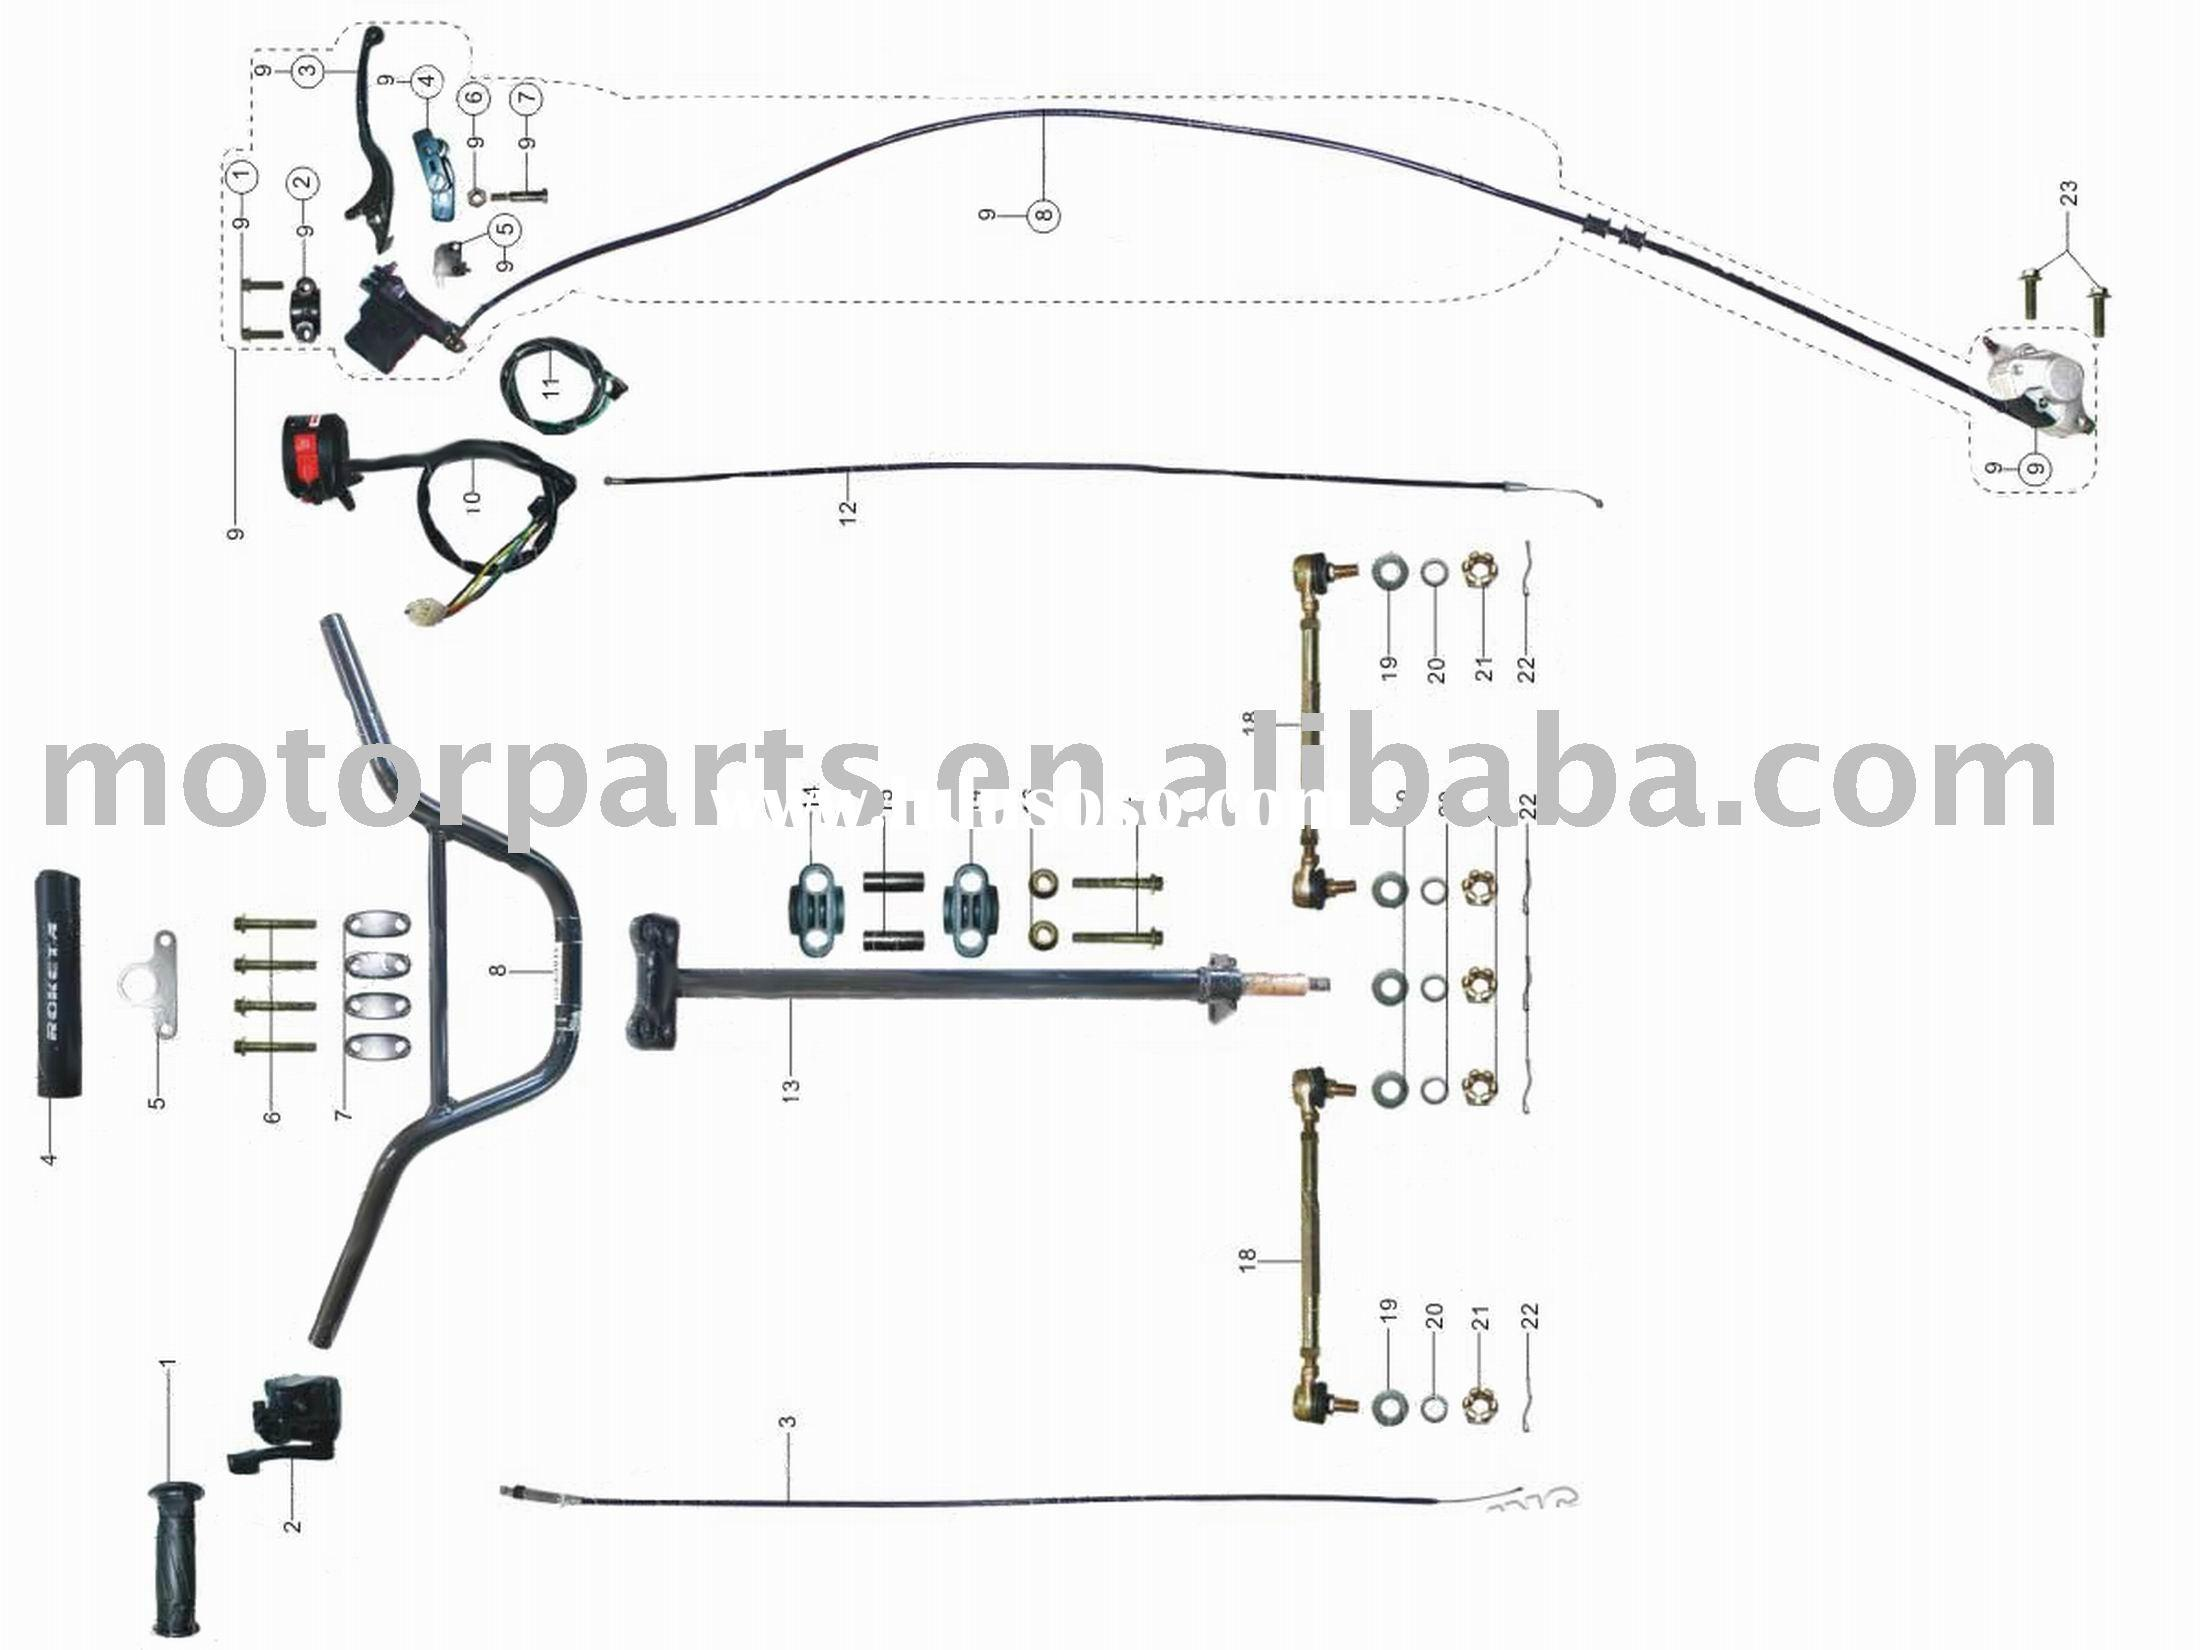 KM_9444] Atv Wiring Diagram As Well Chinese 110Cc Atv Engine Diagram  Moreover Free DiagramUnec Hylec Sequ Piot Rect Mohammedshrine Librar Wiring 101